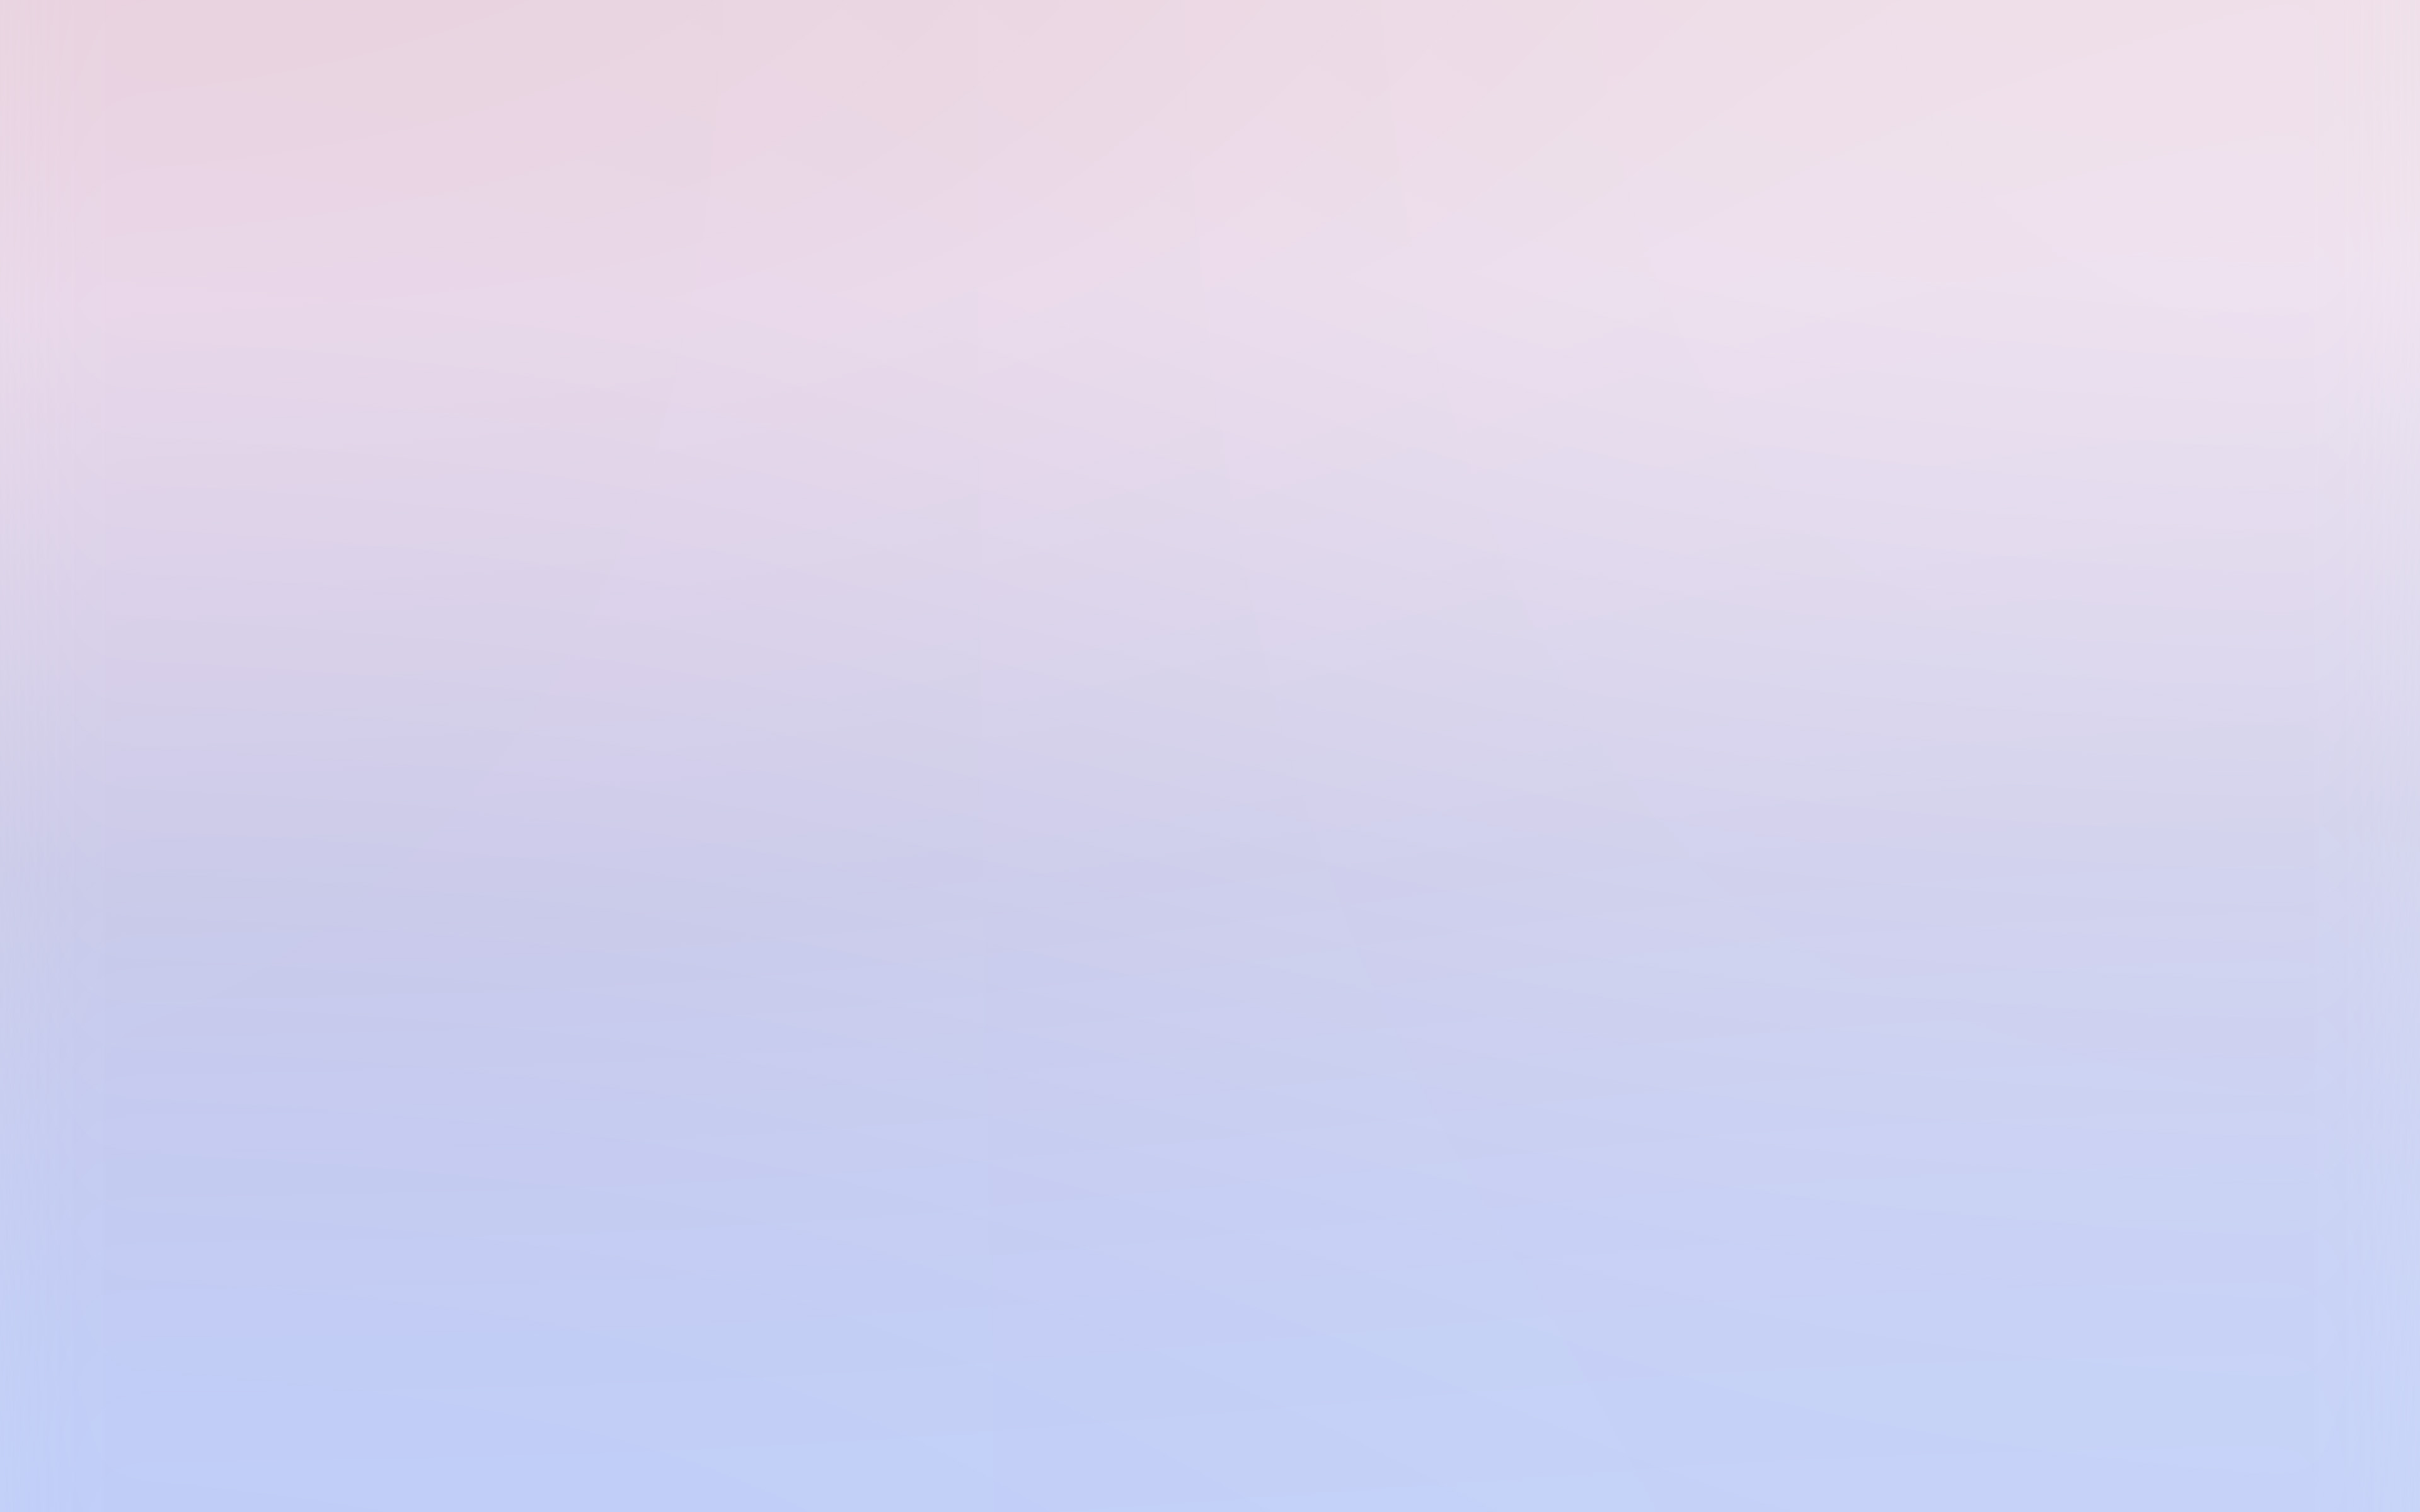 Cute Simple Wallpapers For Iphone Sm55 Pastel Blue Red Morning Blur Gradation Wallpaper